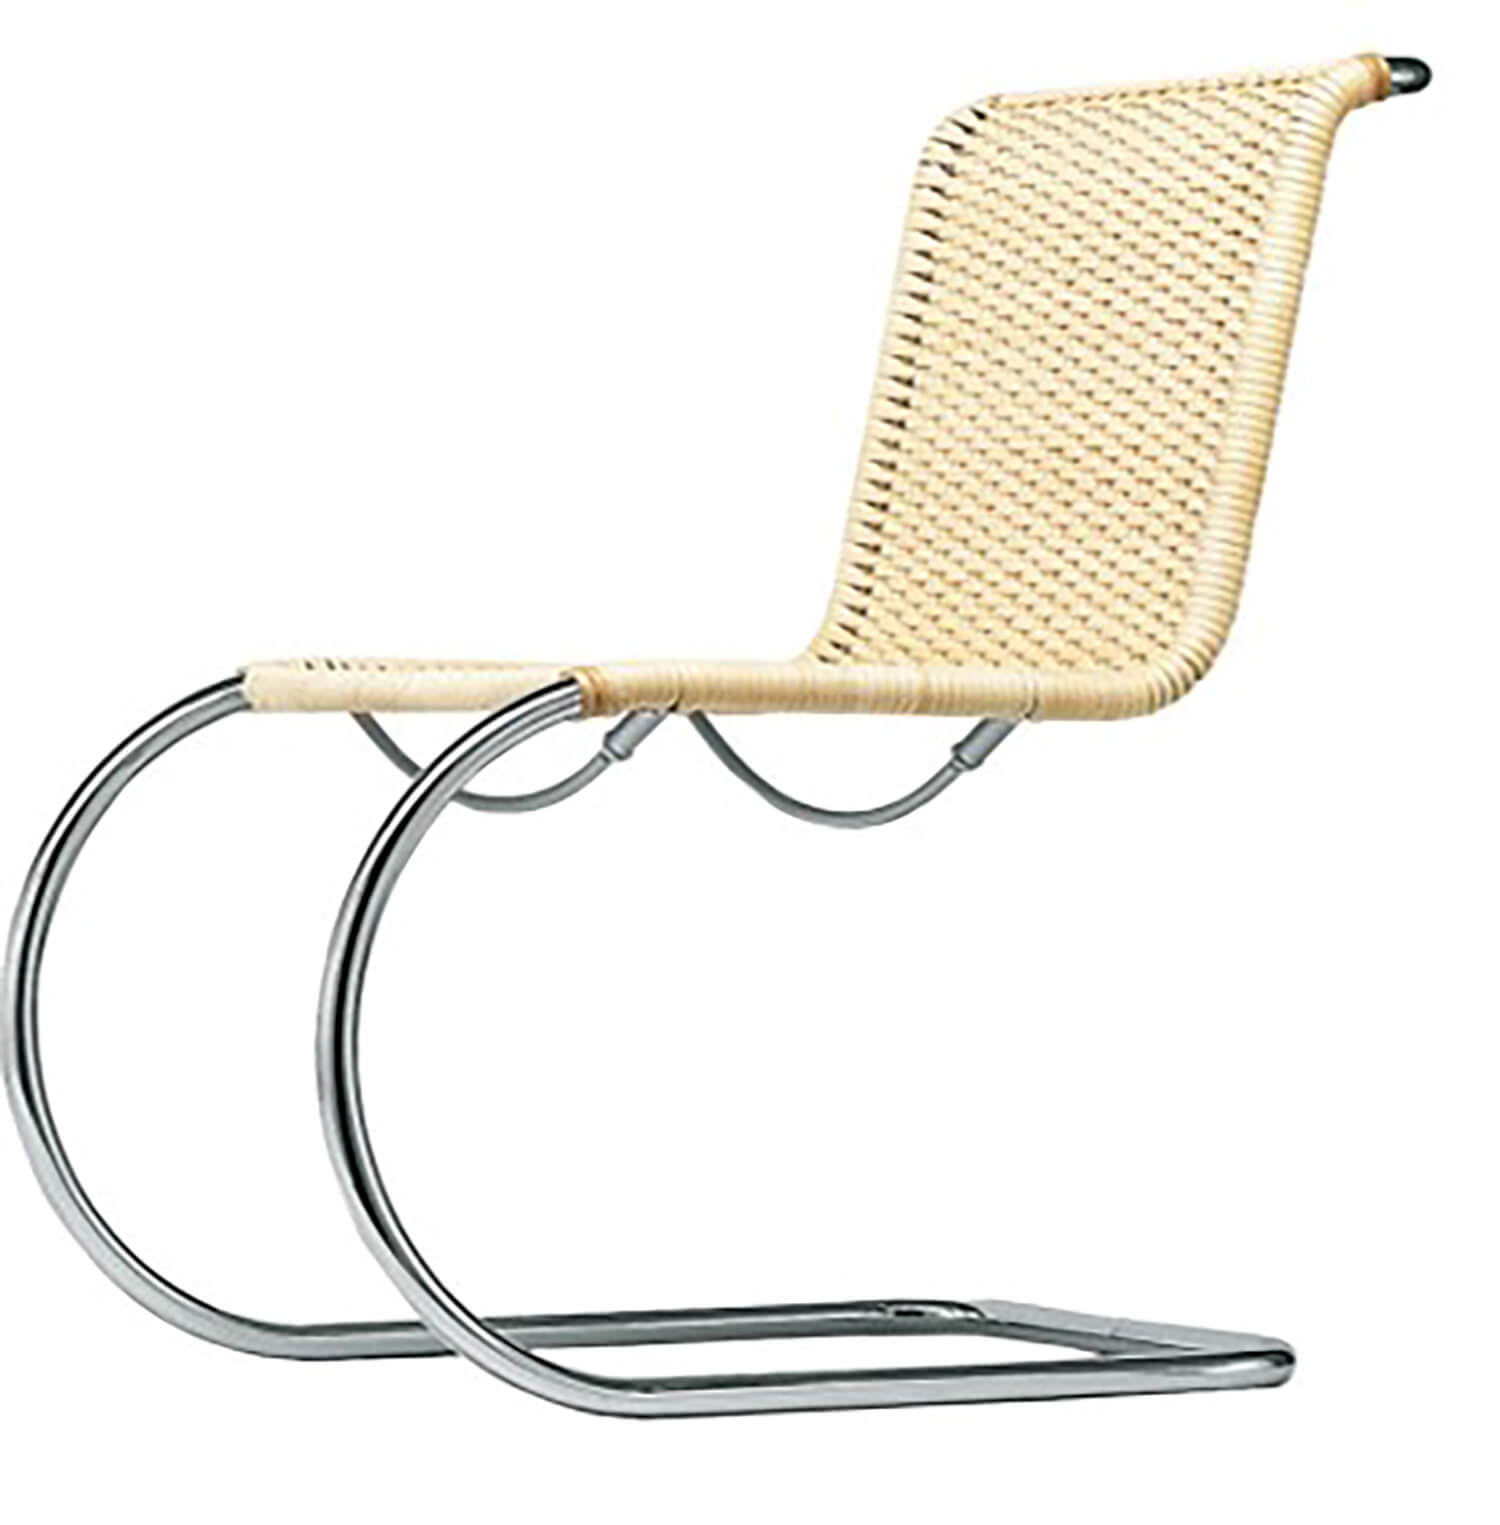 7.Est Living Wickedly Wickered Dedece Ludwig Mies Van der Rohe MR Side Chair